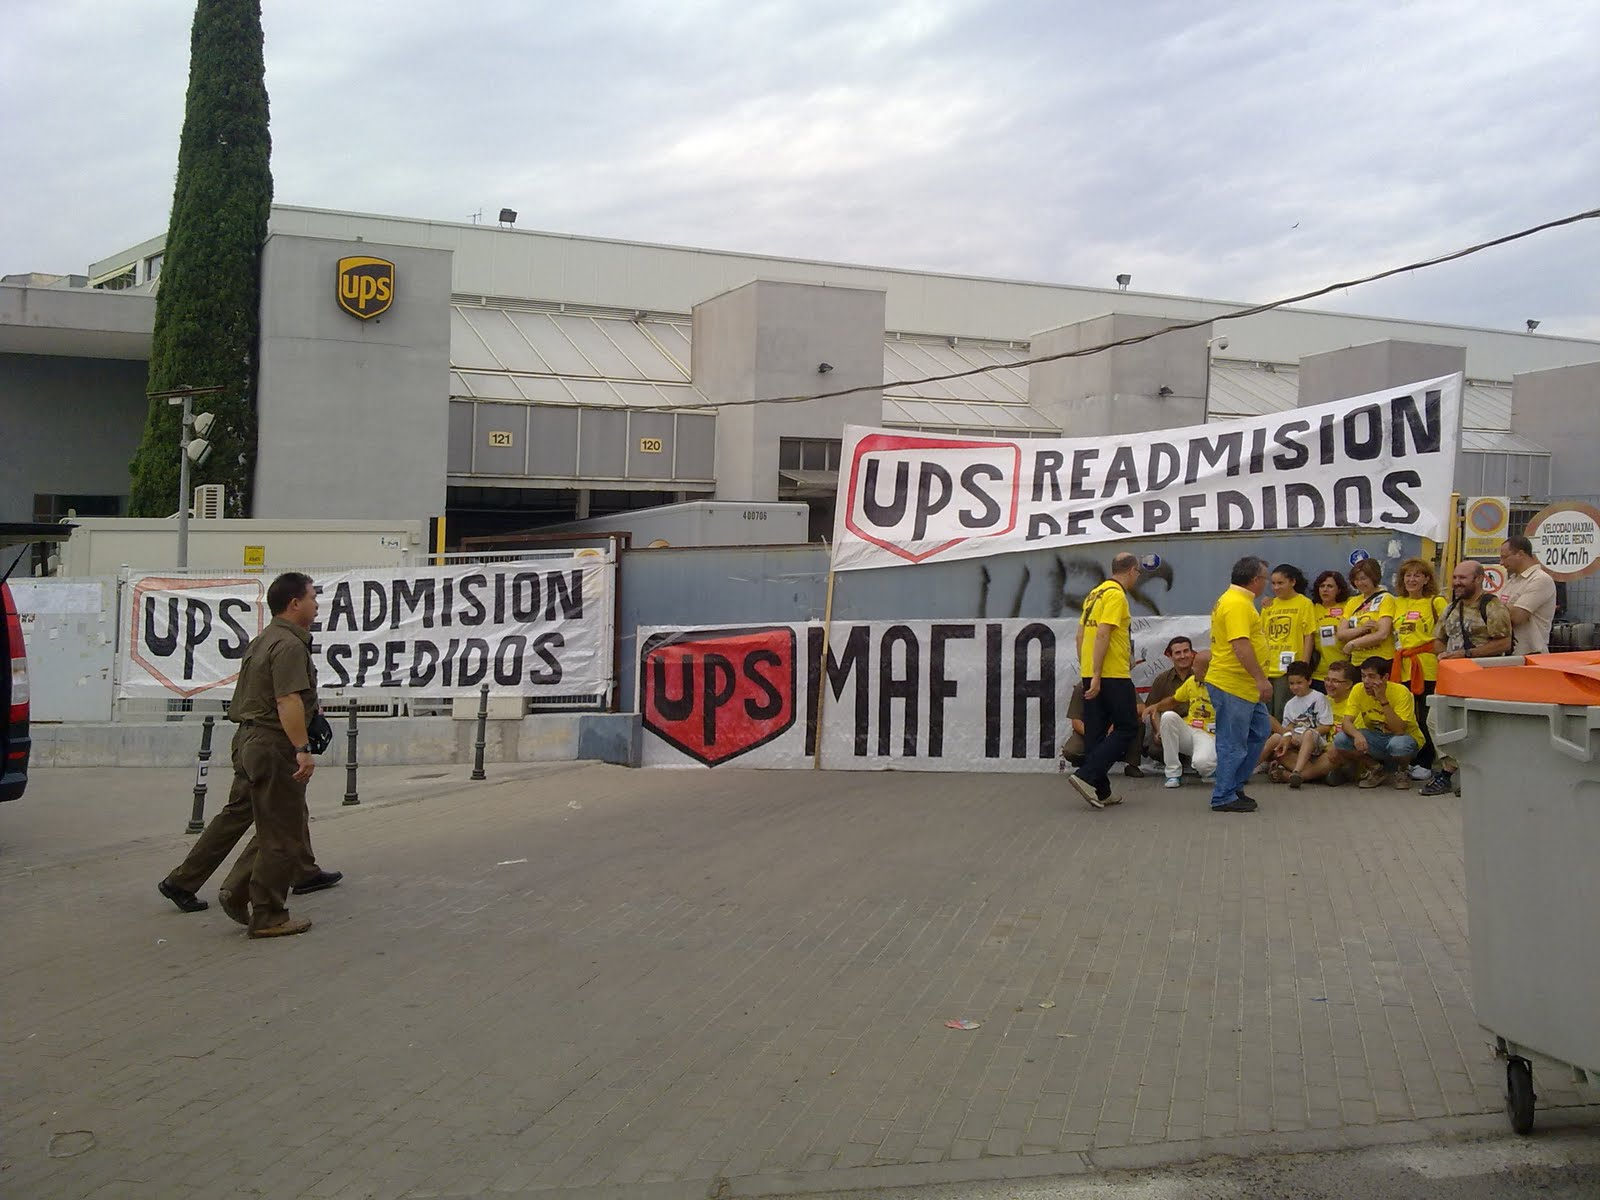 Blog de los as trabajadores as de ups vallecas octavilla for Oficina empleo coslada